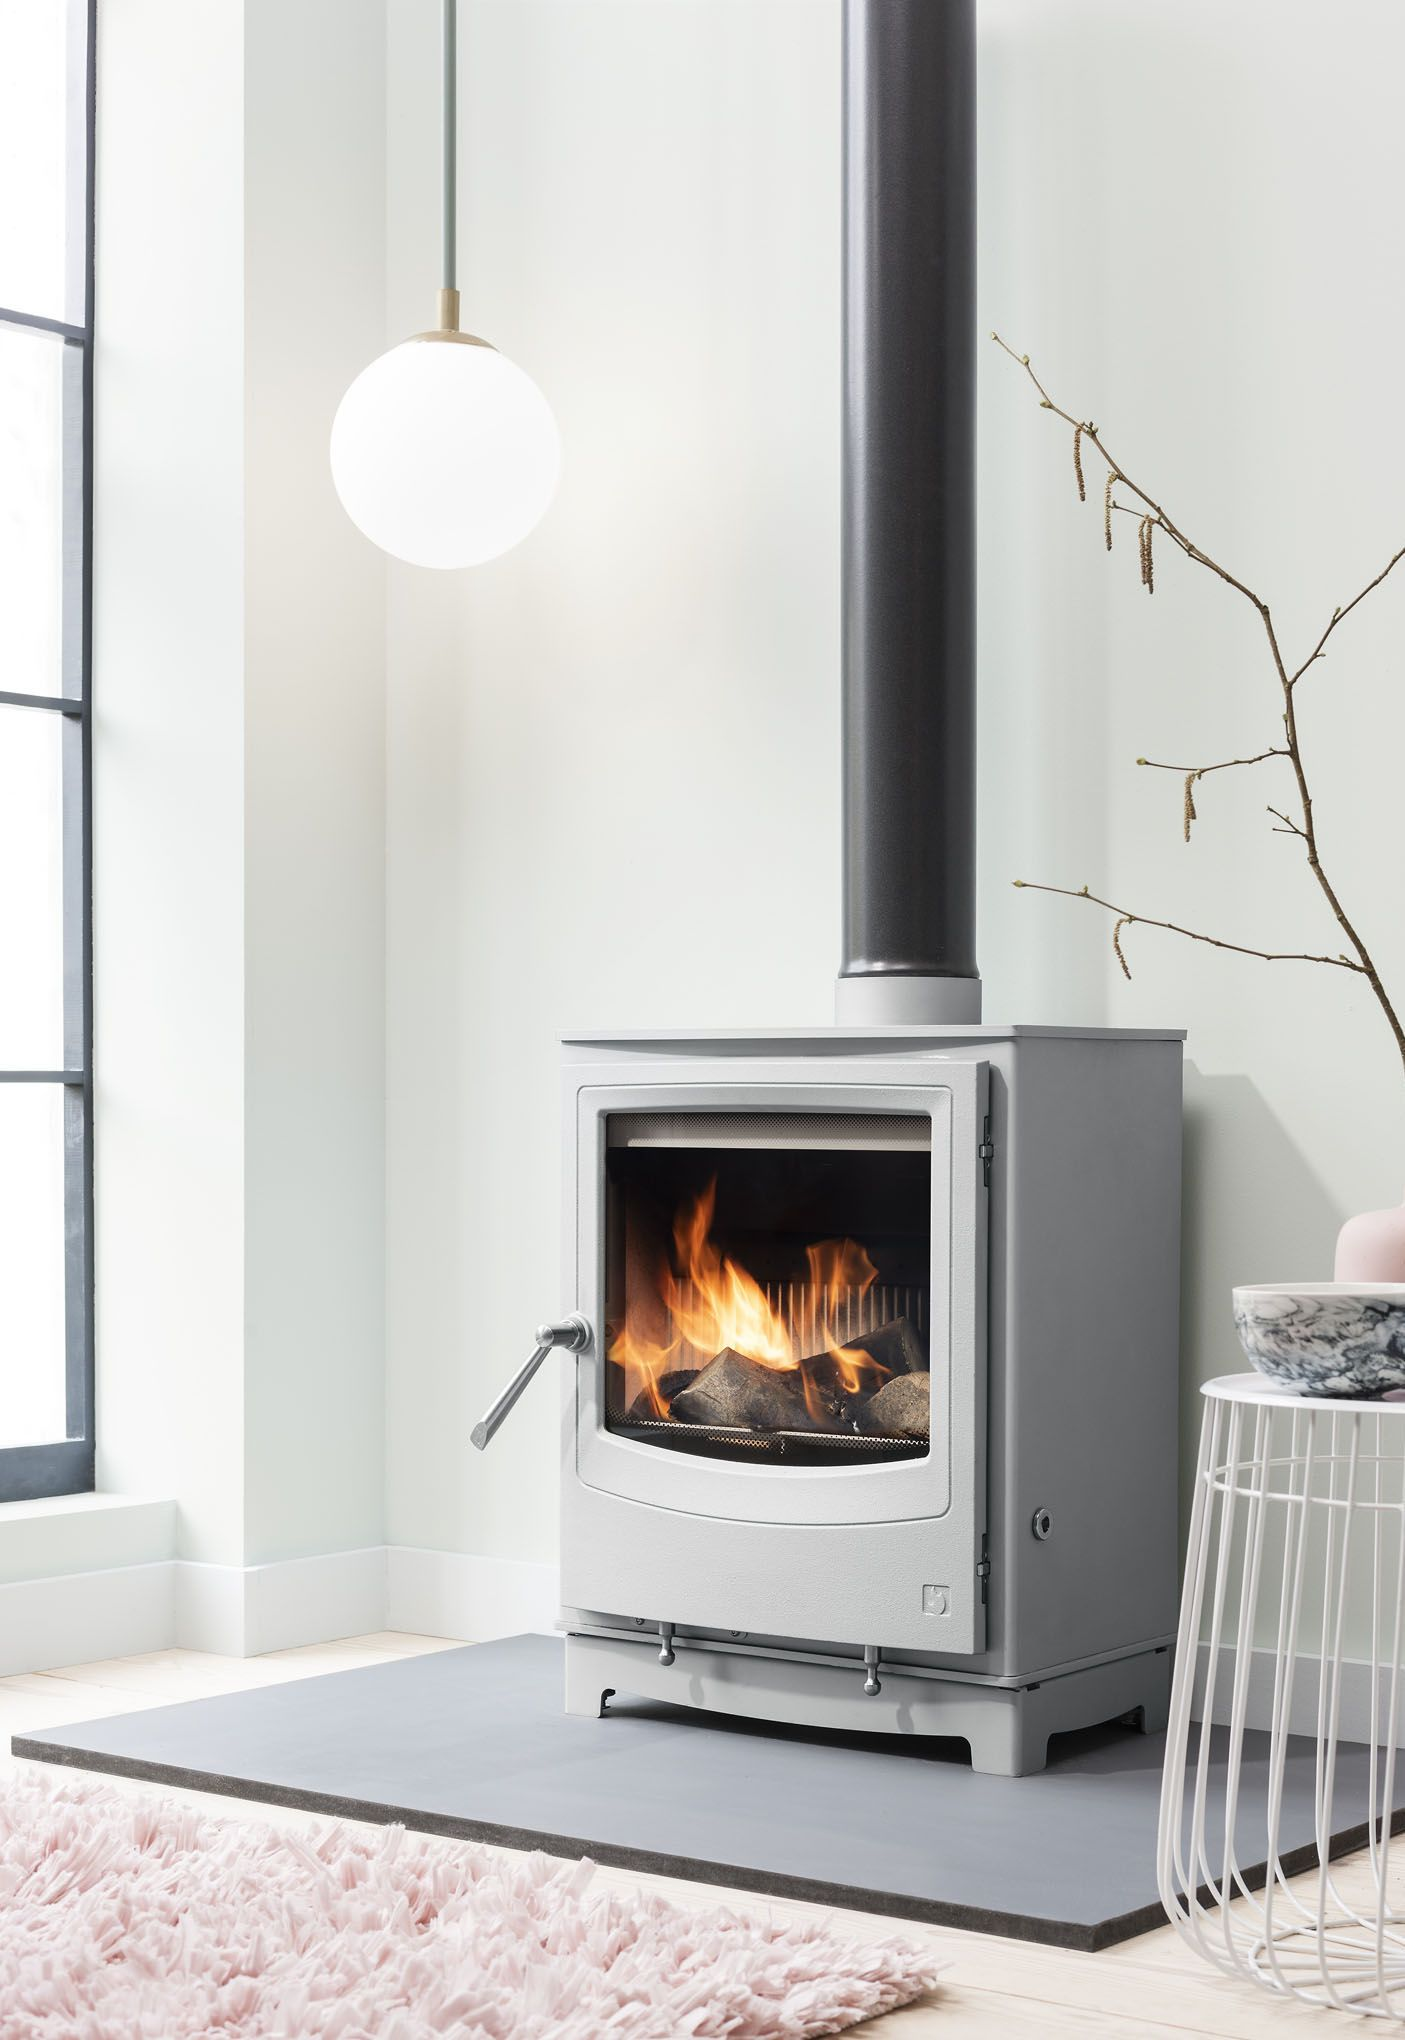 A Guide To Choosing And Installing A Wood Burning Stove These Four Walls Modern Wood Burning Stoves Freestanding Fireplace Wood Burning Stove